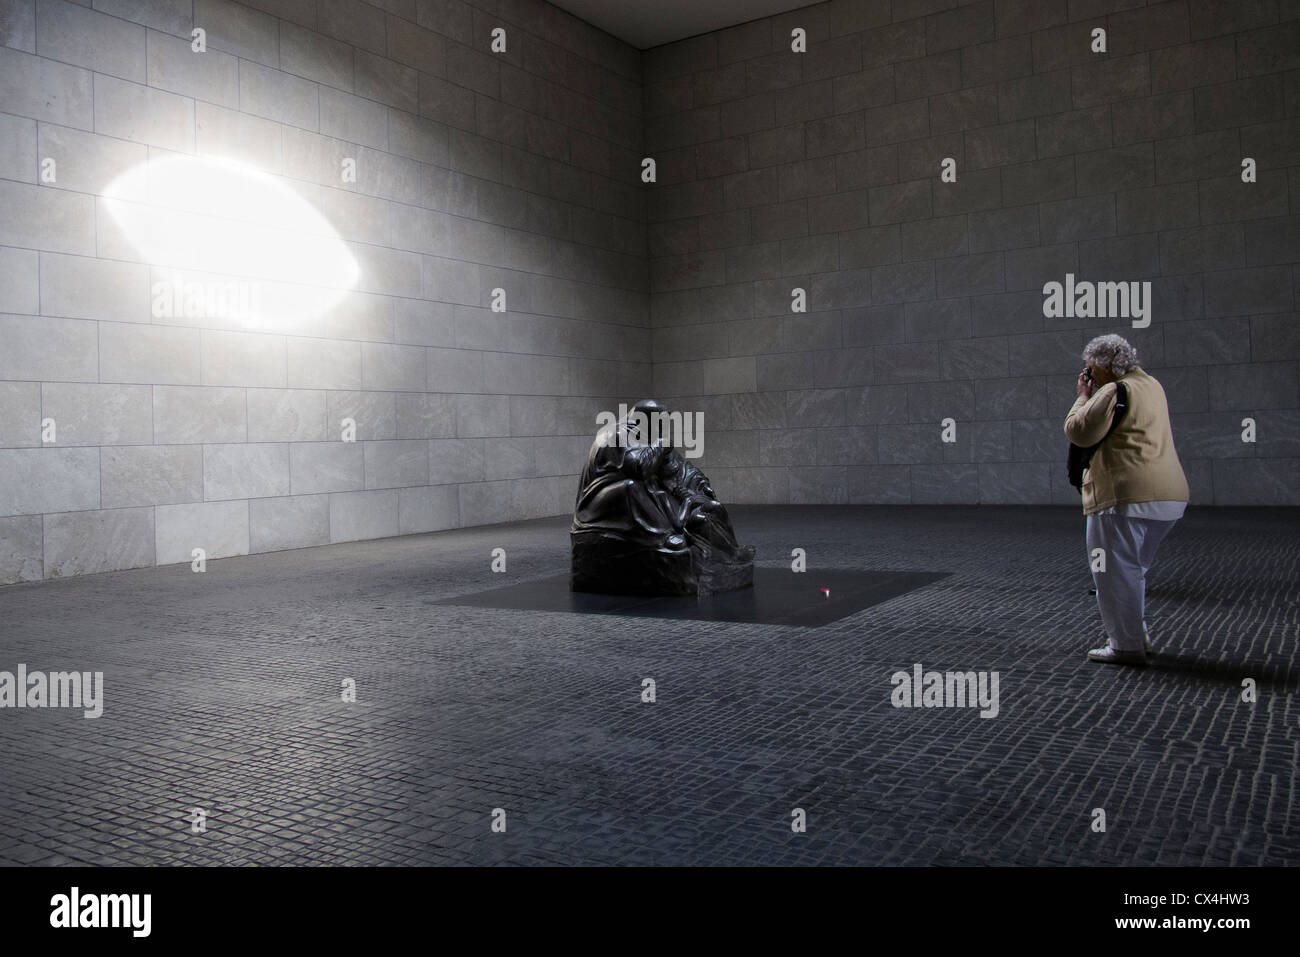 The Neue Wache (New Guard House), now 'Central Memorial of the Federal Republic of Germany for the Victims of - Stock Image